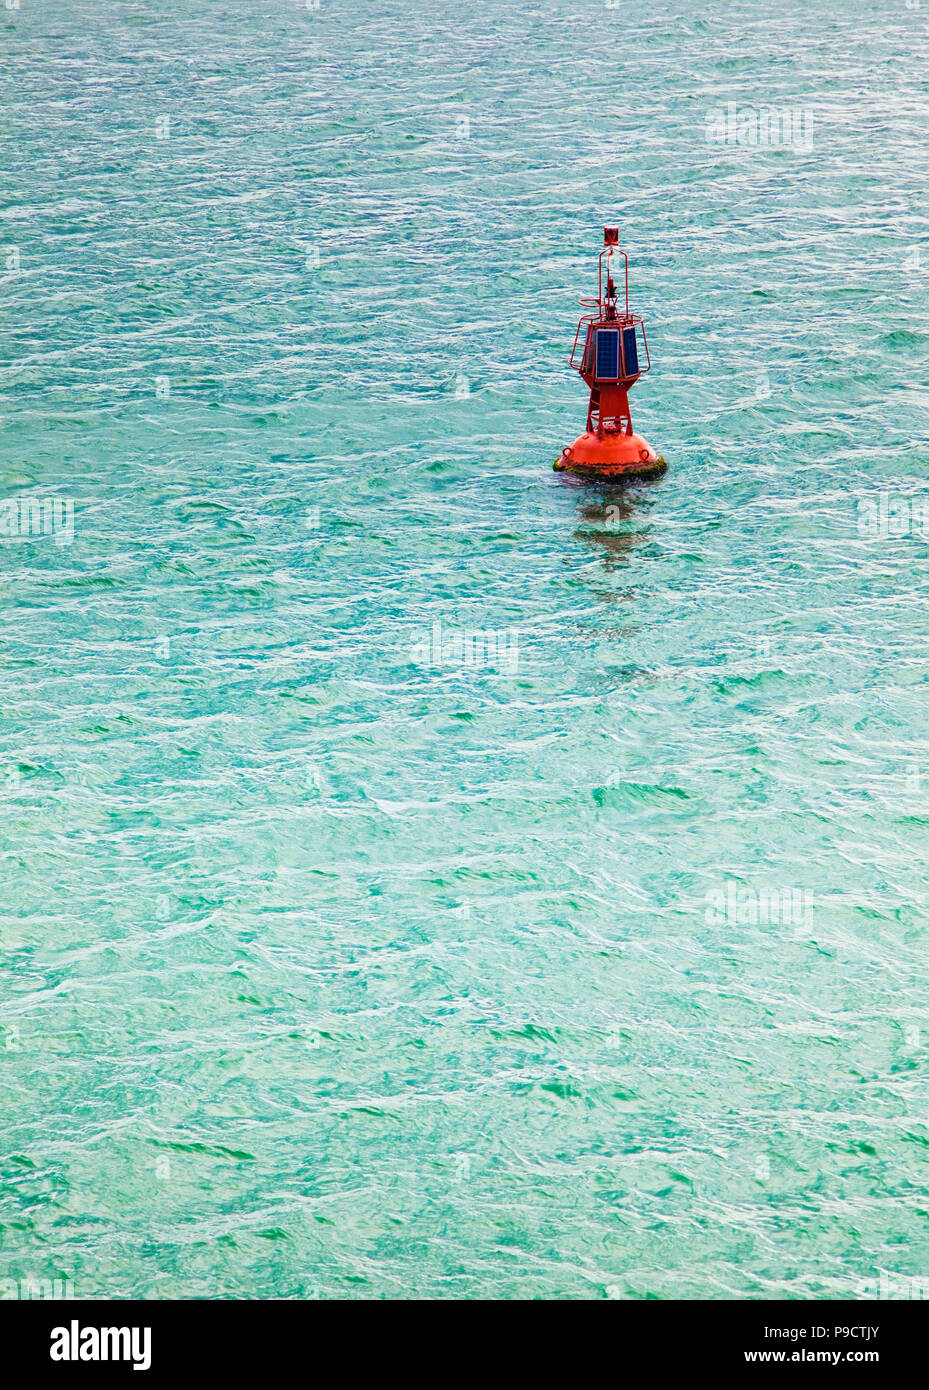 Solar powered navigation buoy in a calm sea, France, Europe - Stock Image